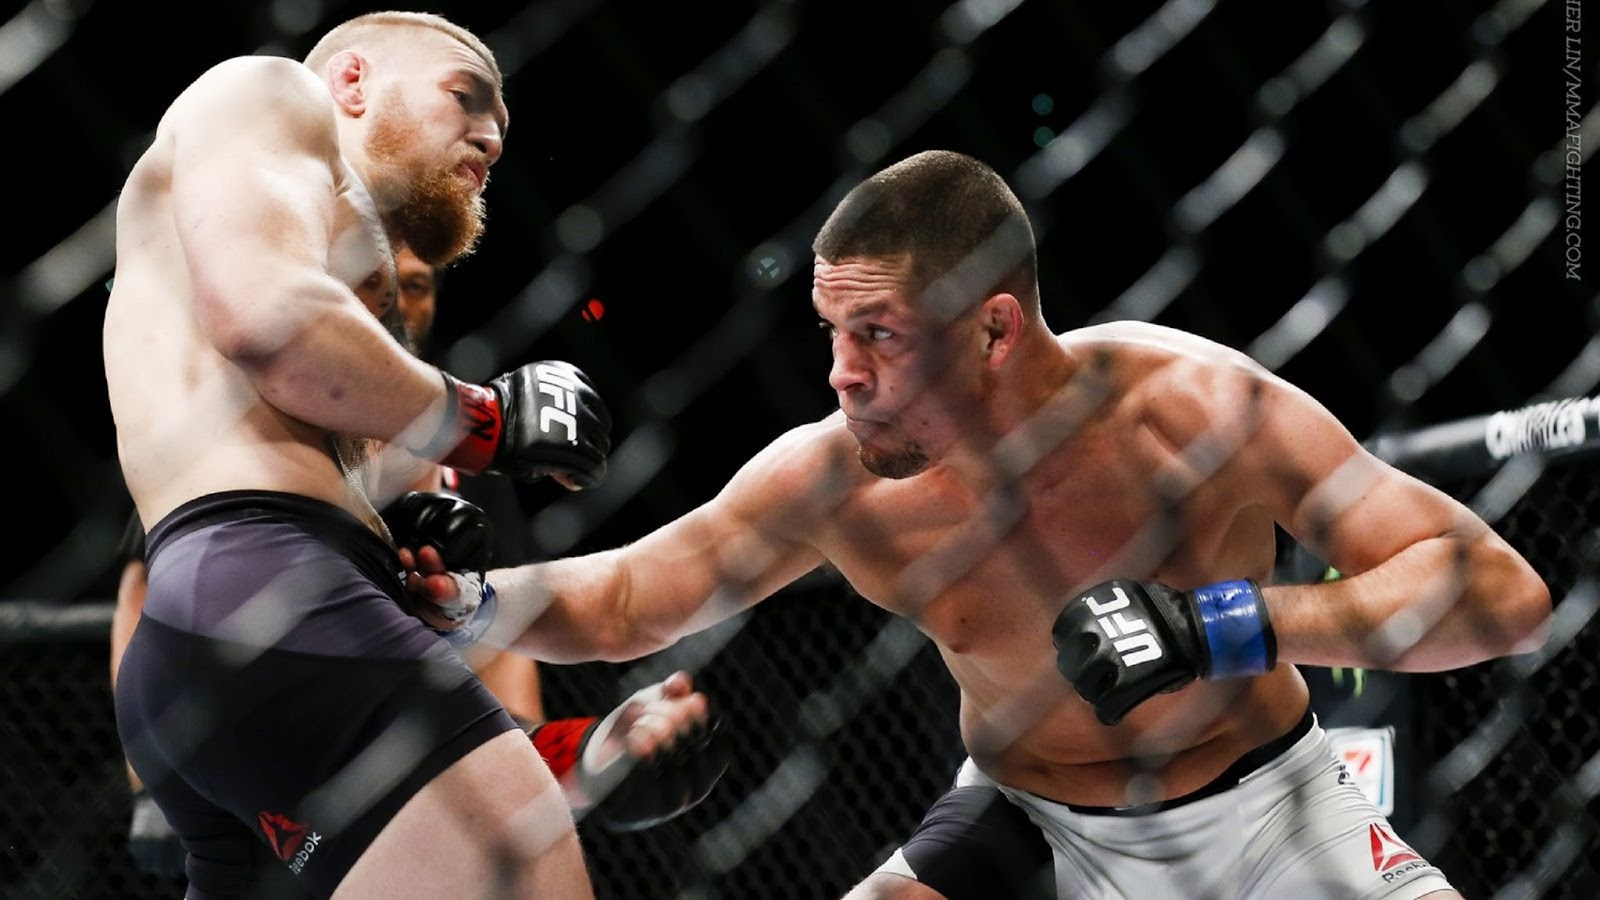 CONOR MCGREGOR VS. NATE DIAZ 6